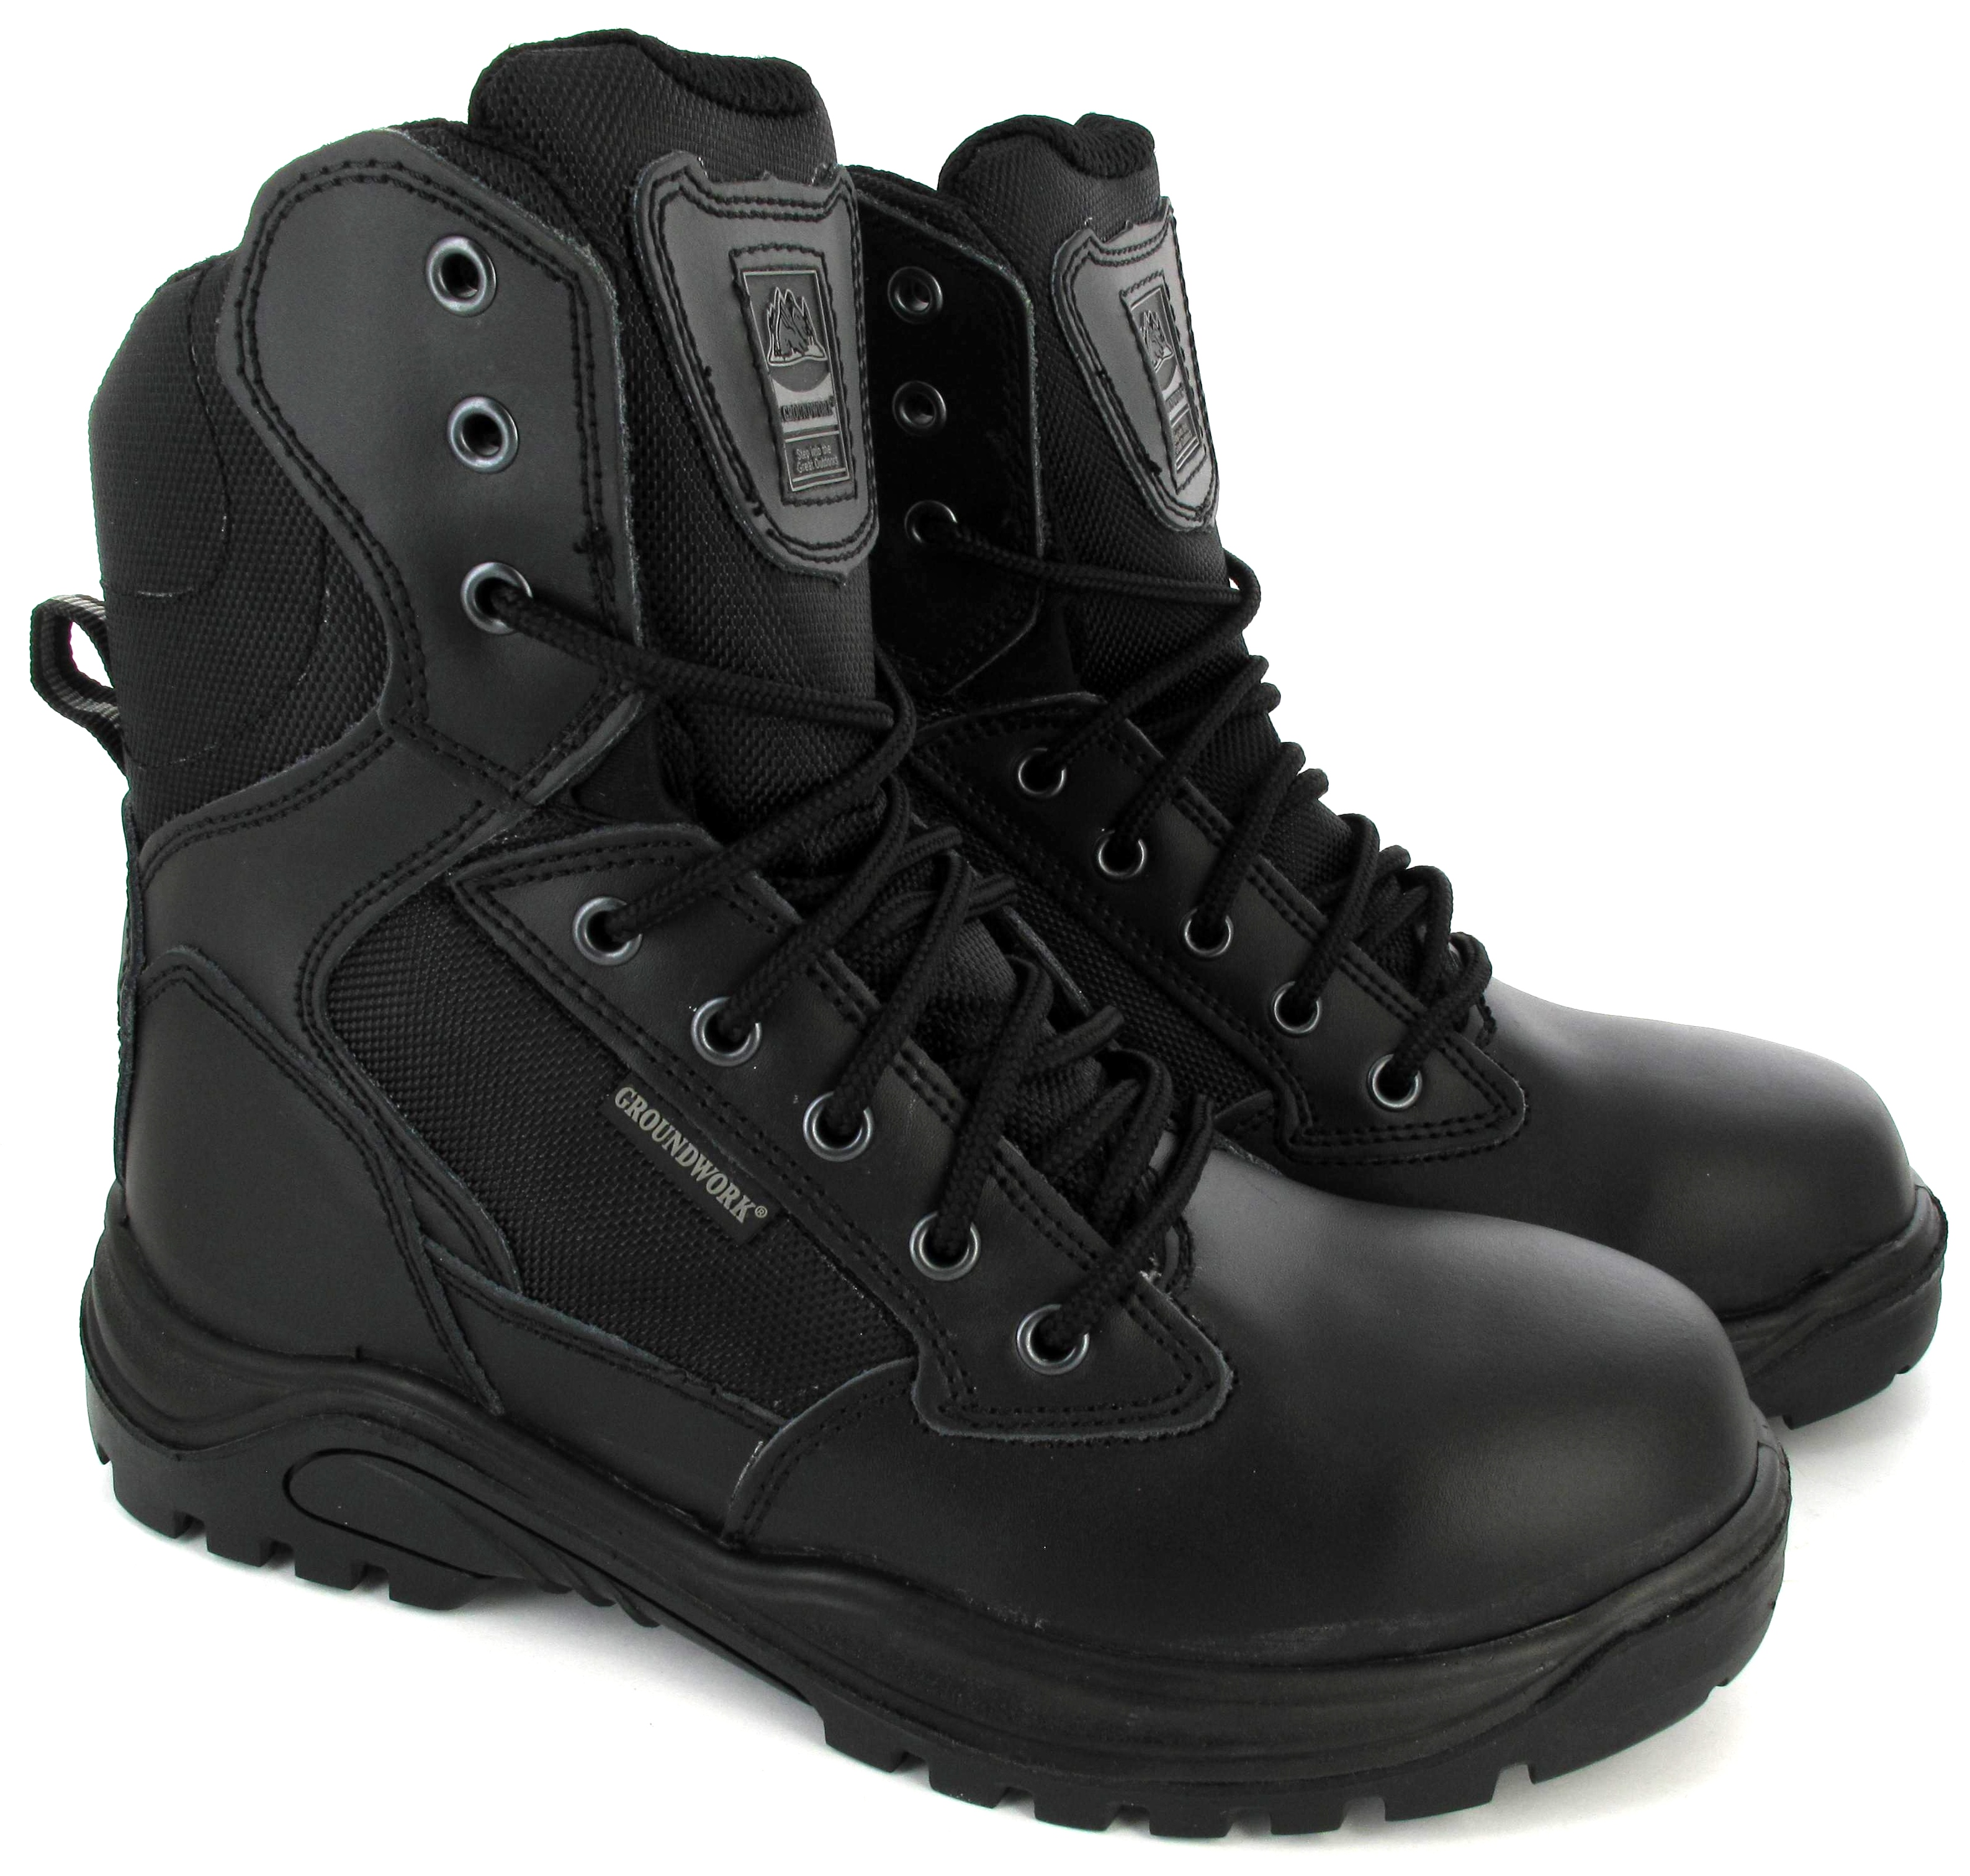 MENS-ARMY-MILITAR-STEEL-TOE-SAFETY-COMBAT-POLICE-COMBAT ...